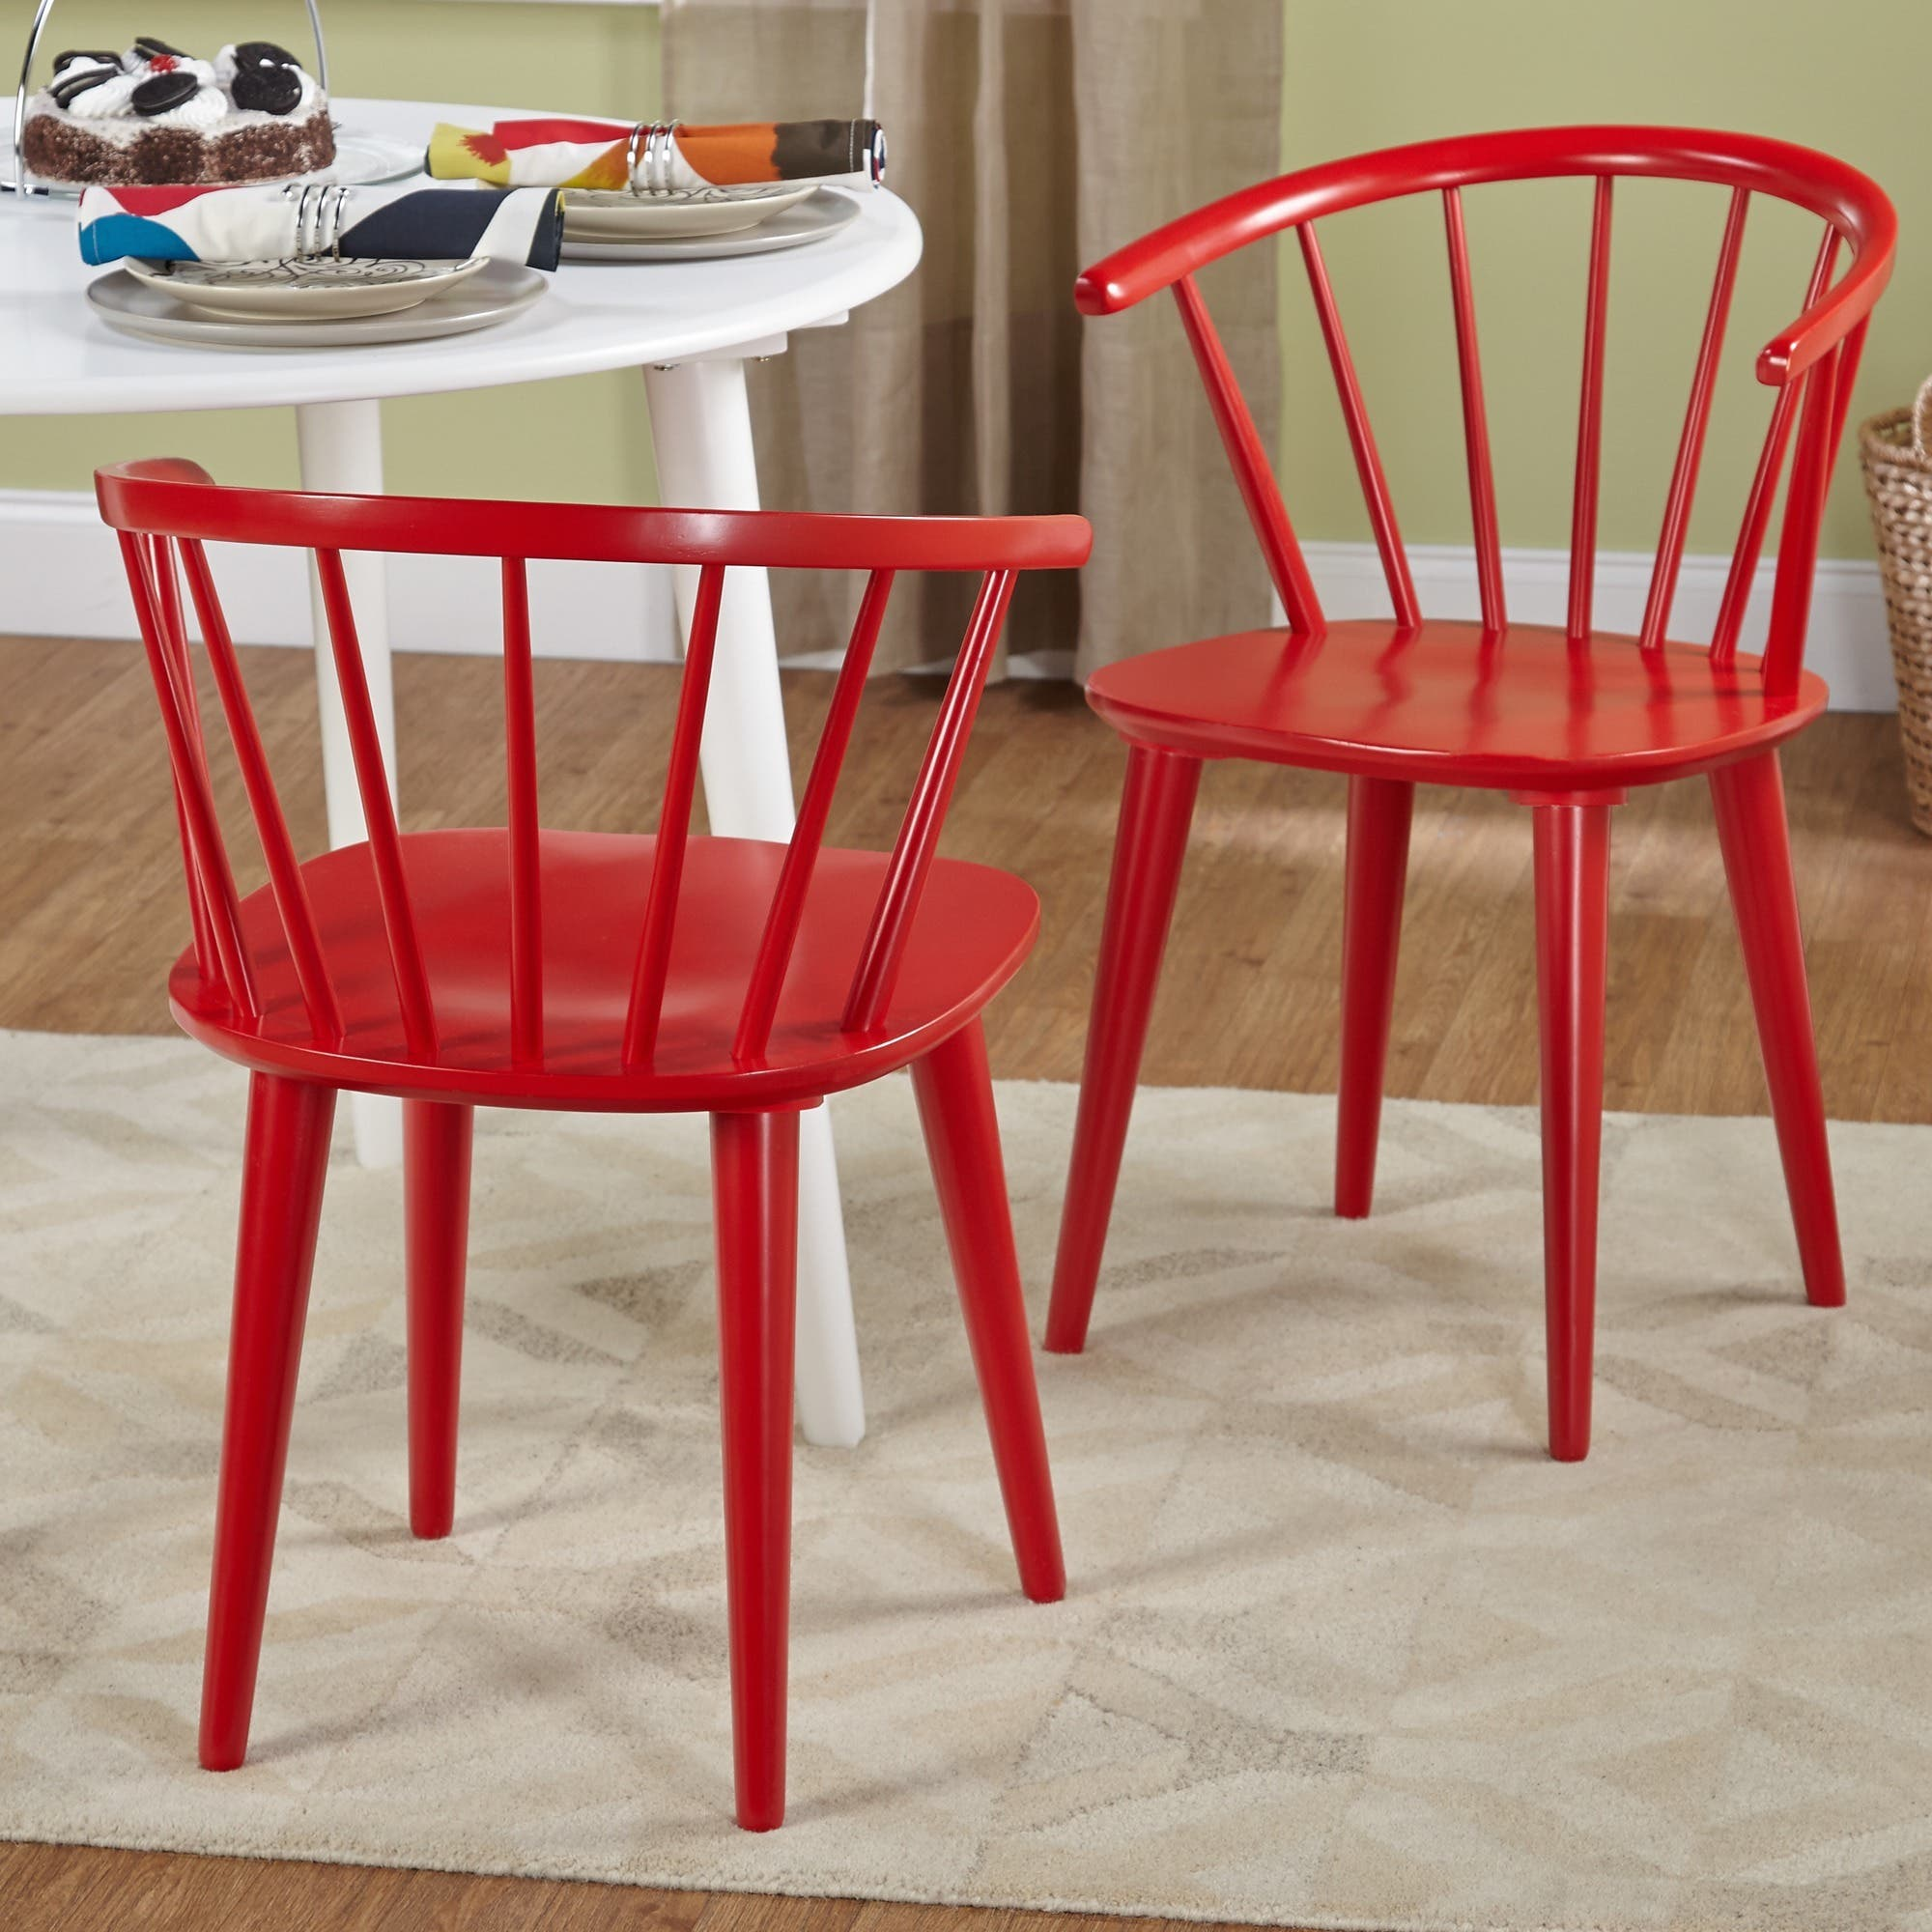 Dining room kitchen chairs for less for Public dining room 50 off